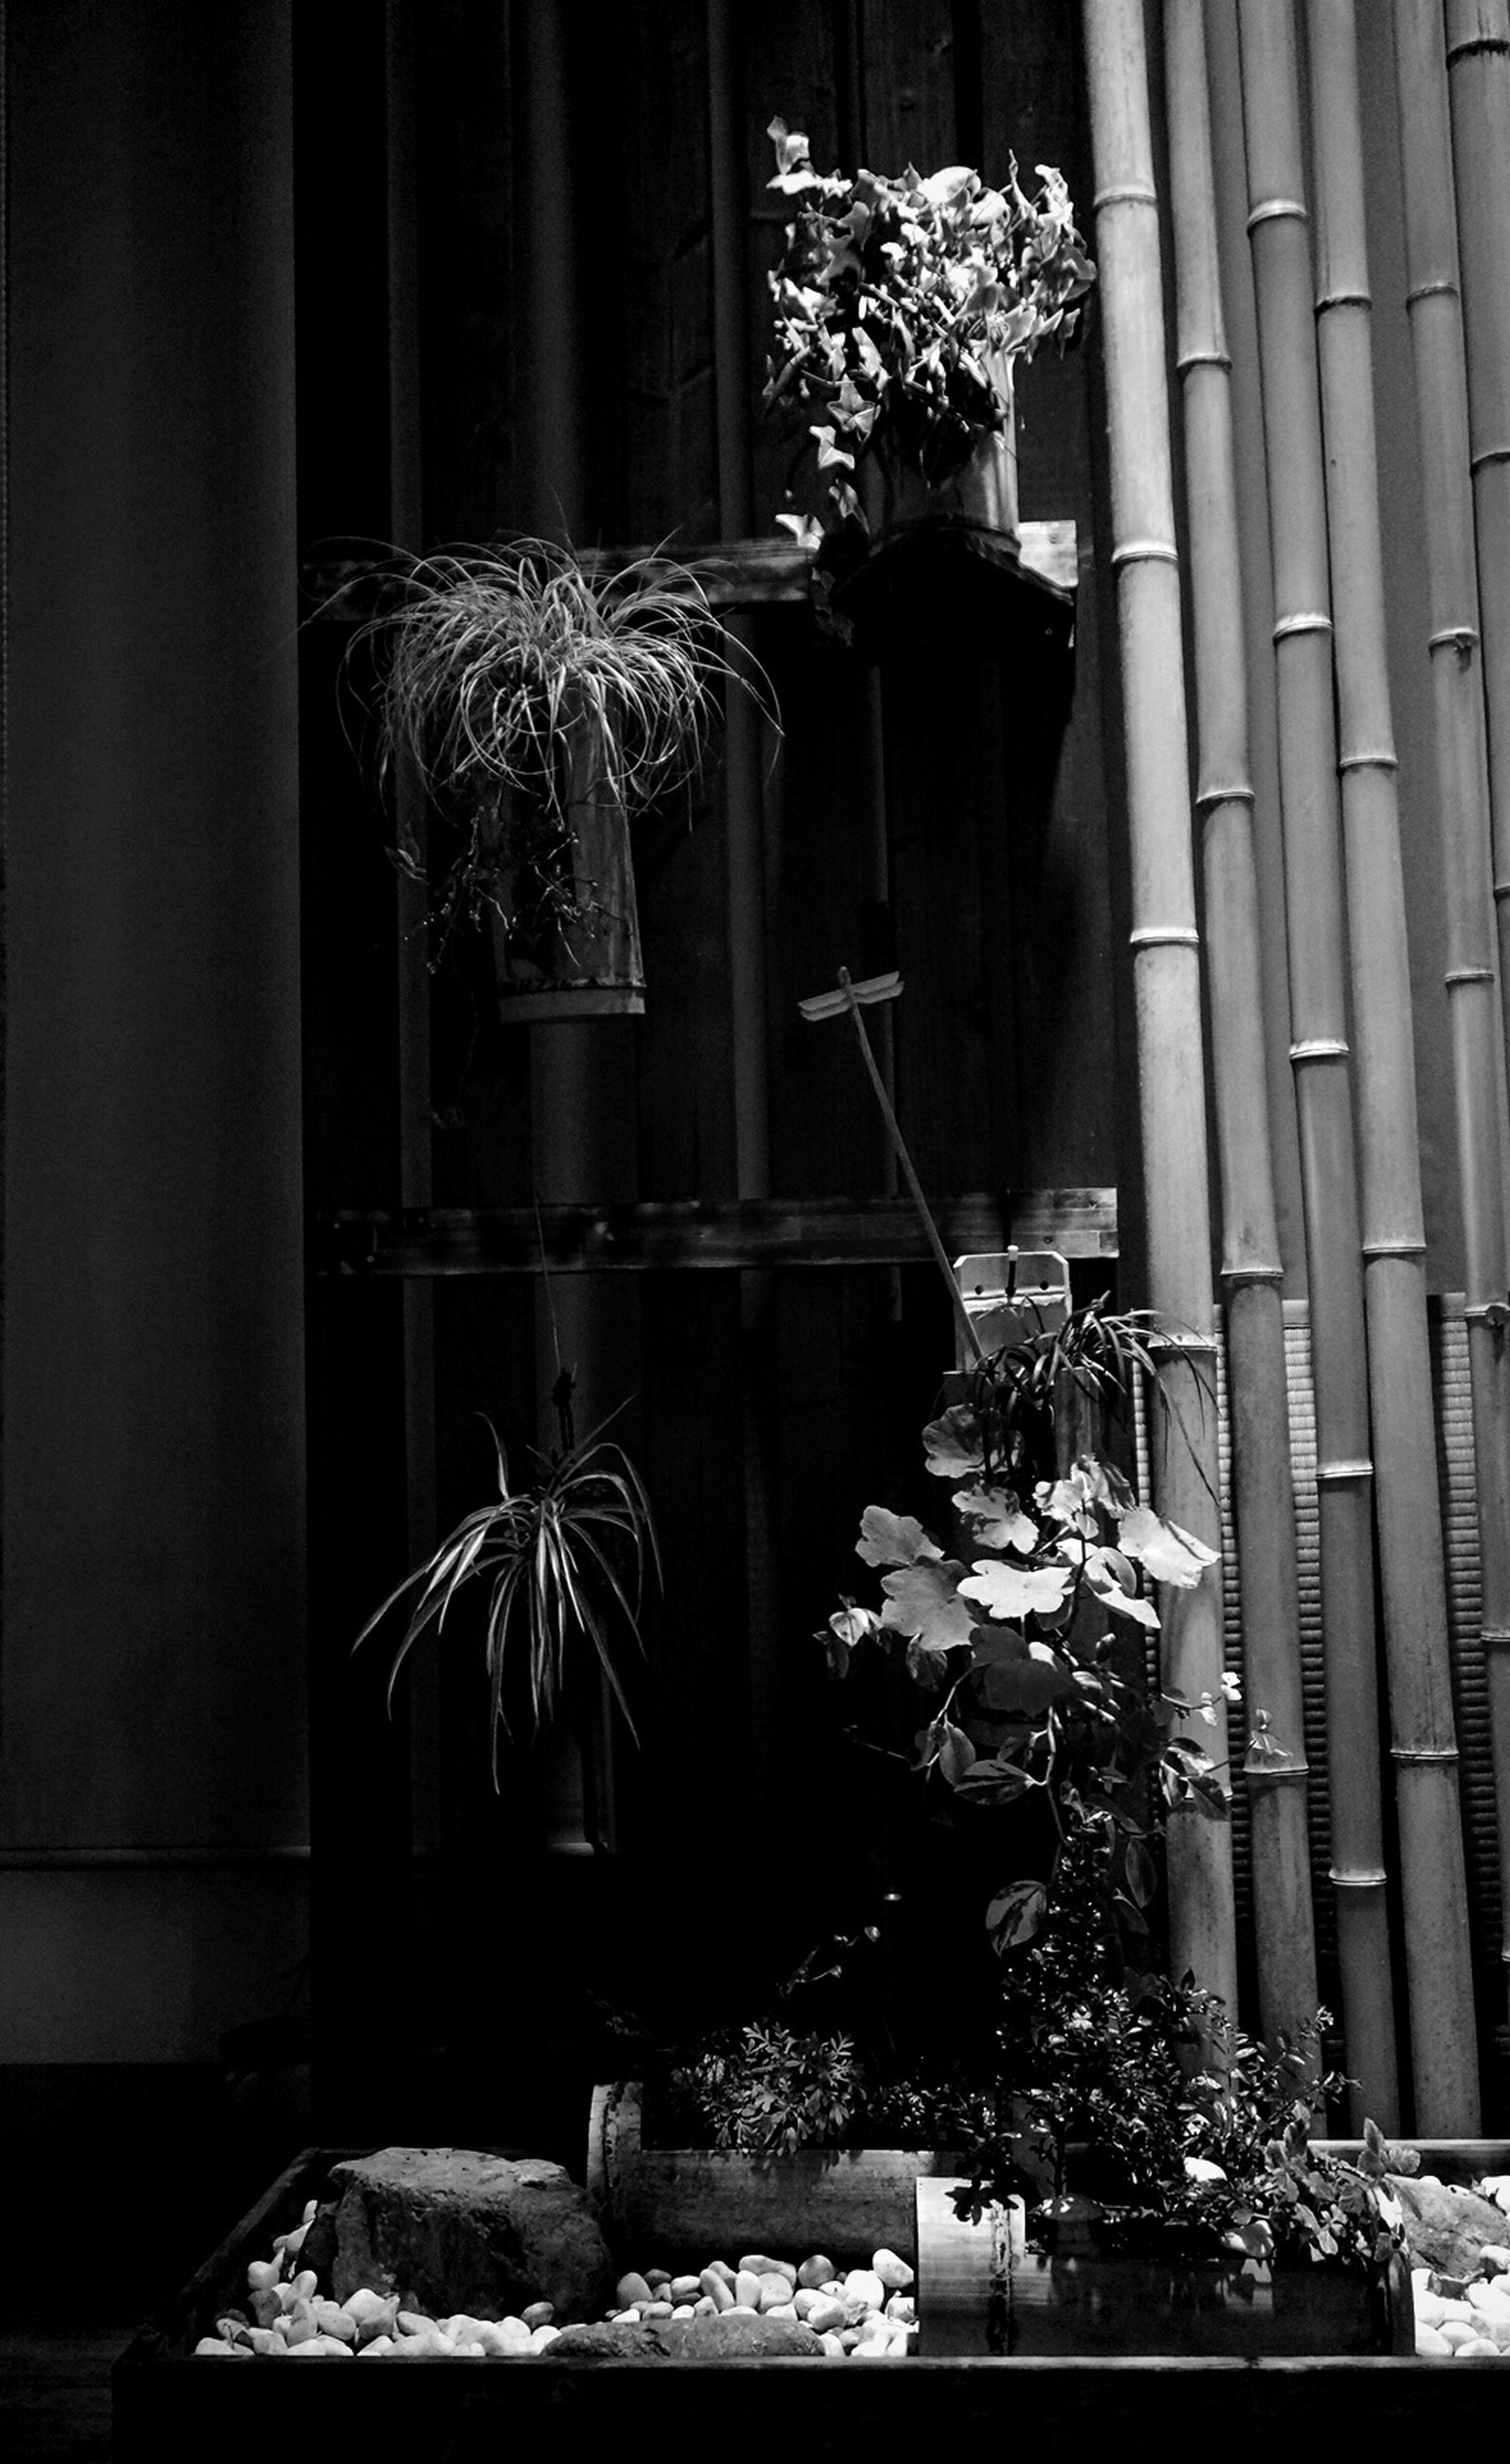 building exterior, architecture, built structure, potted plant, window, plant, statue, day, human representation, outdoors, house, retail, city, outside, building, flower, art and craft, hanging, store, art